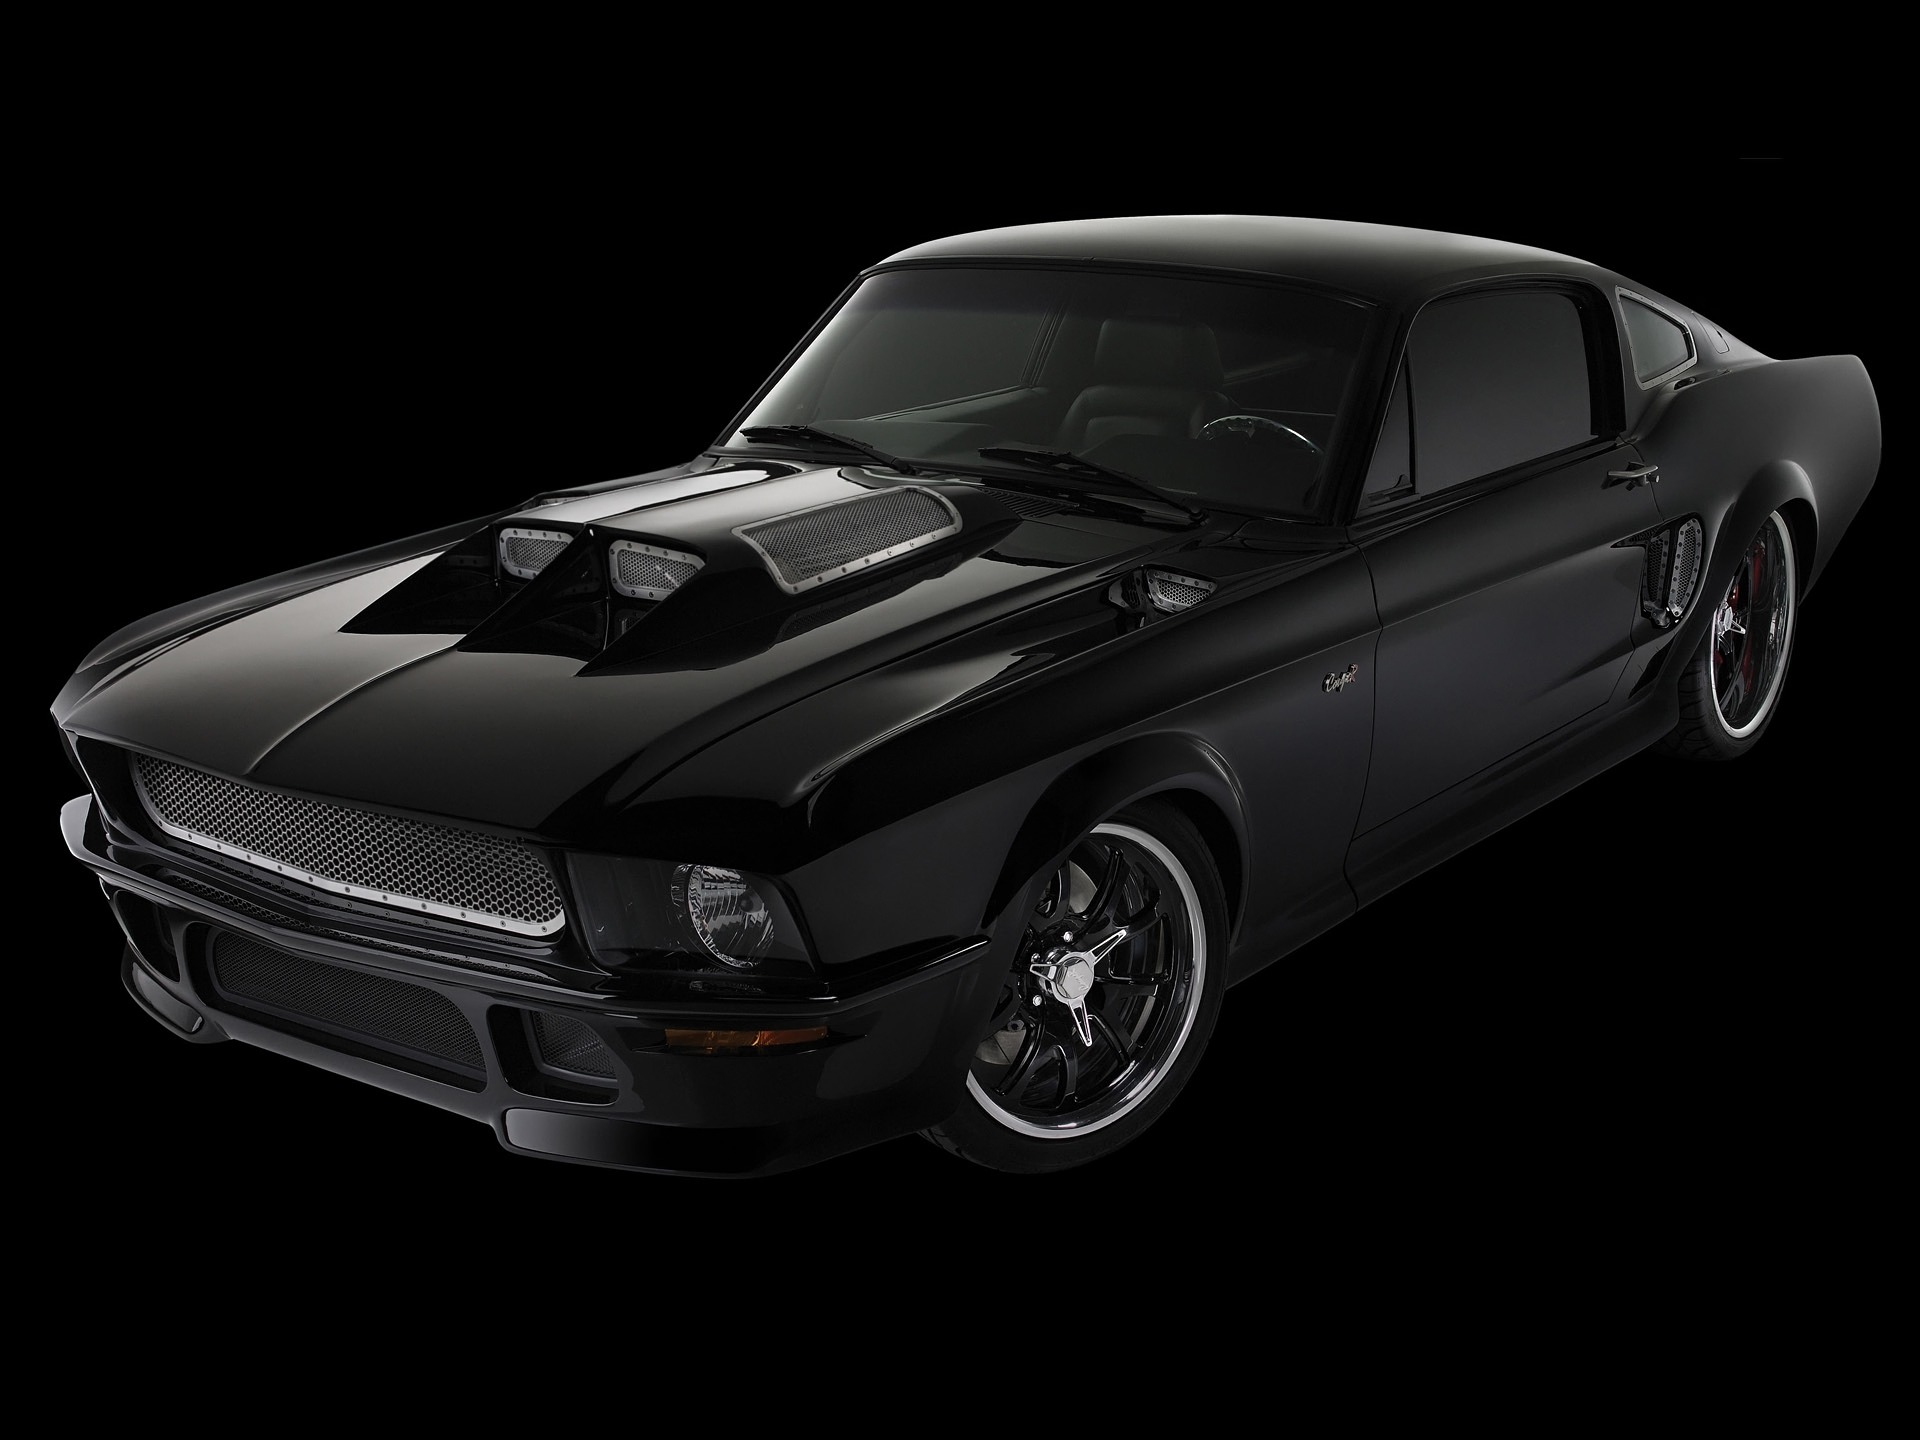 Best-Collection-of-Mustang-For-Desktop-Screens-×-wallpaper-wp3603227